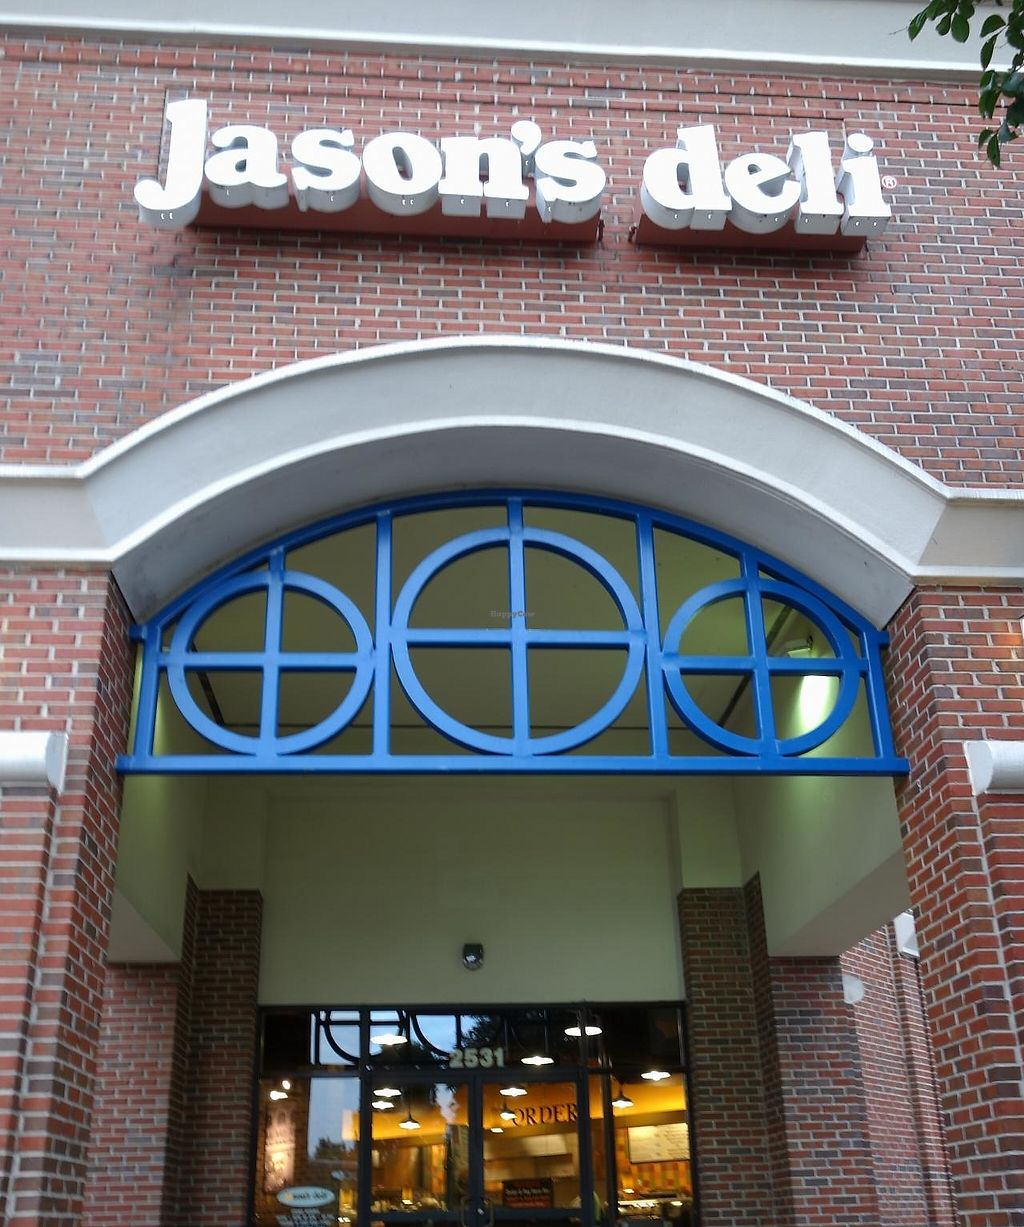 """Photo of Jason's Deli  by <a href=""""/members/profile/Gudrun"""">Gudrun</a> <br/>Jason's Deli <br/> May 16, 2015  - <a href='/contact/abuse/image/58455/200792'>Report</a>"""